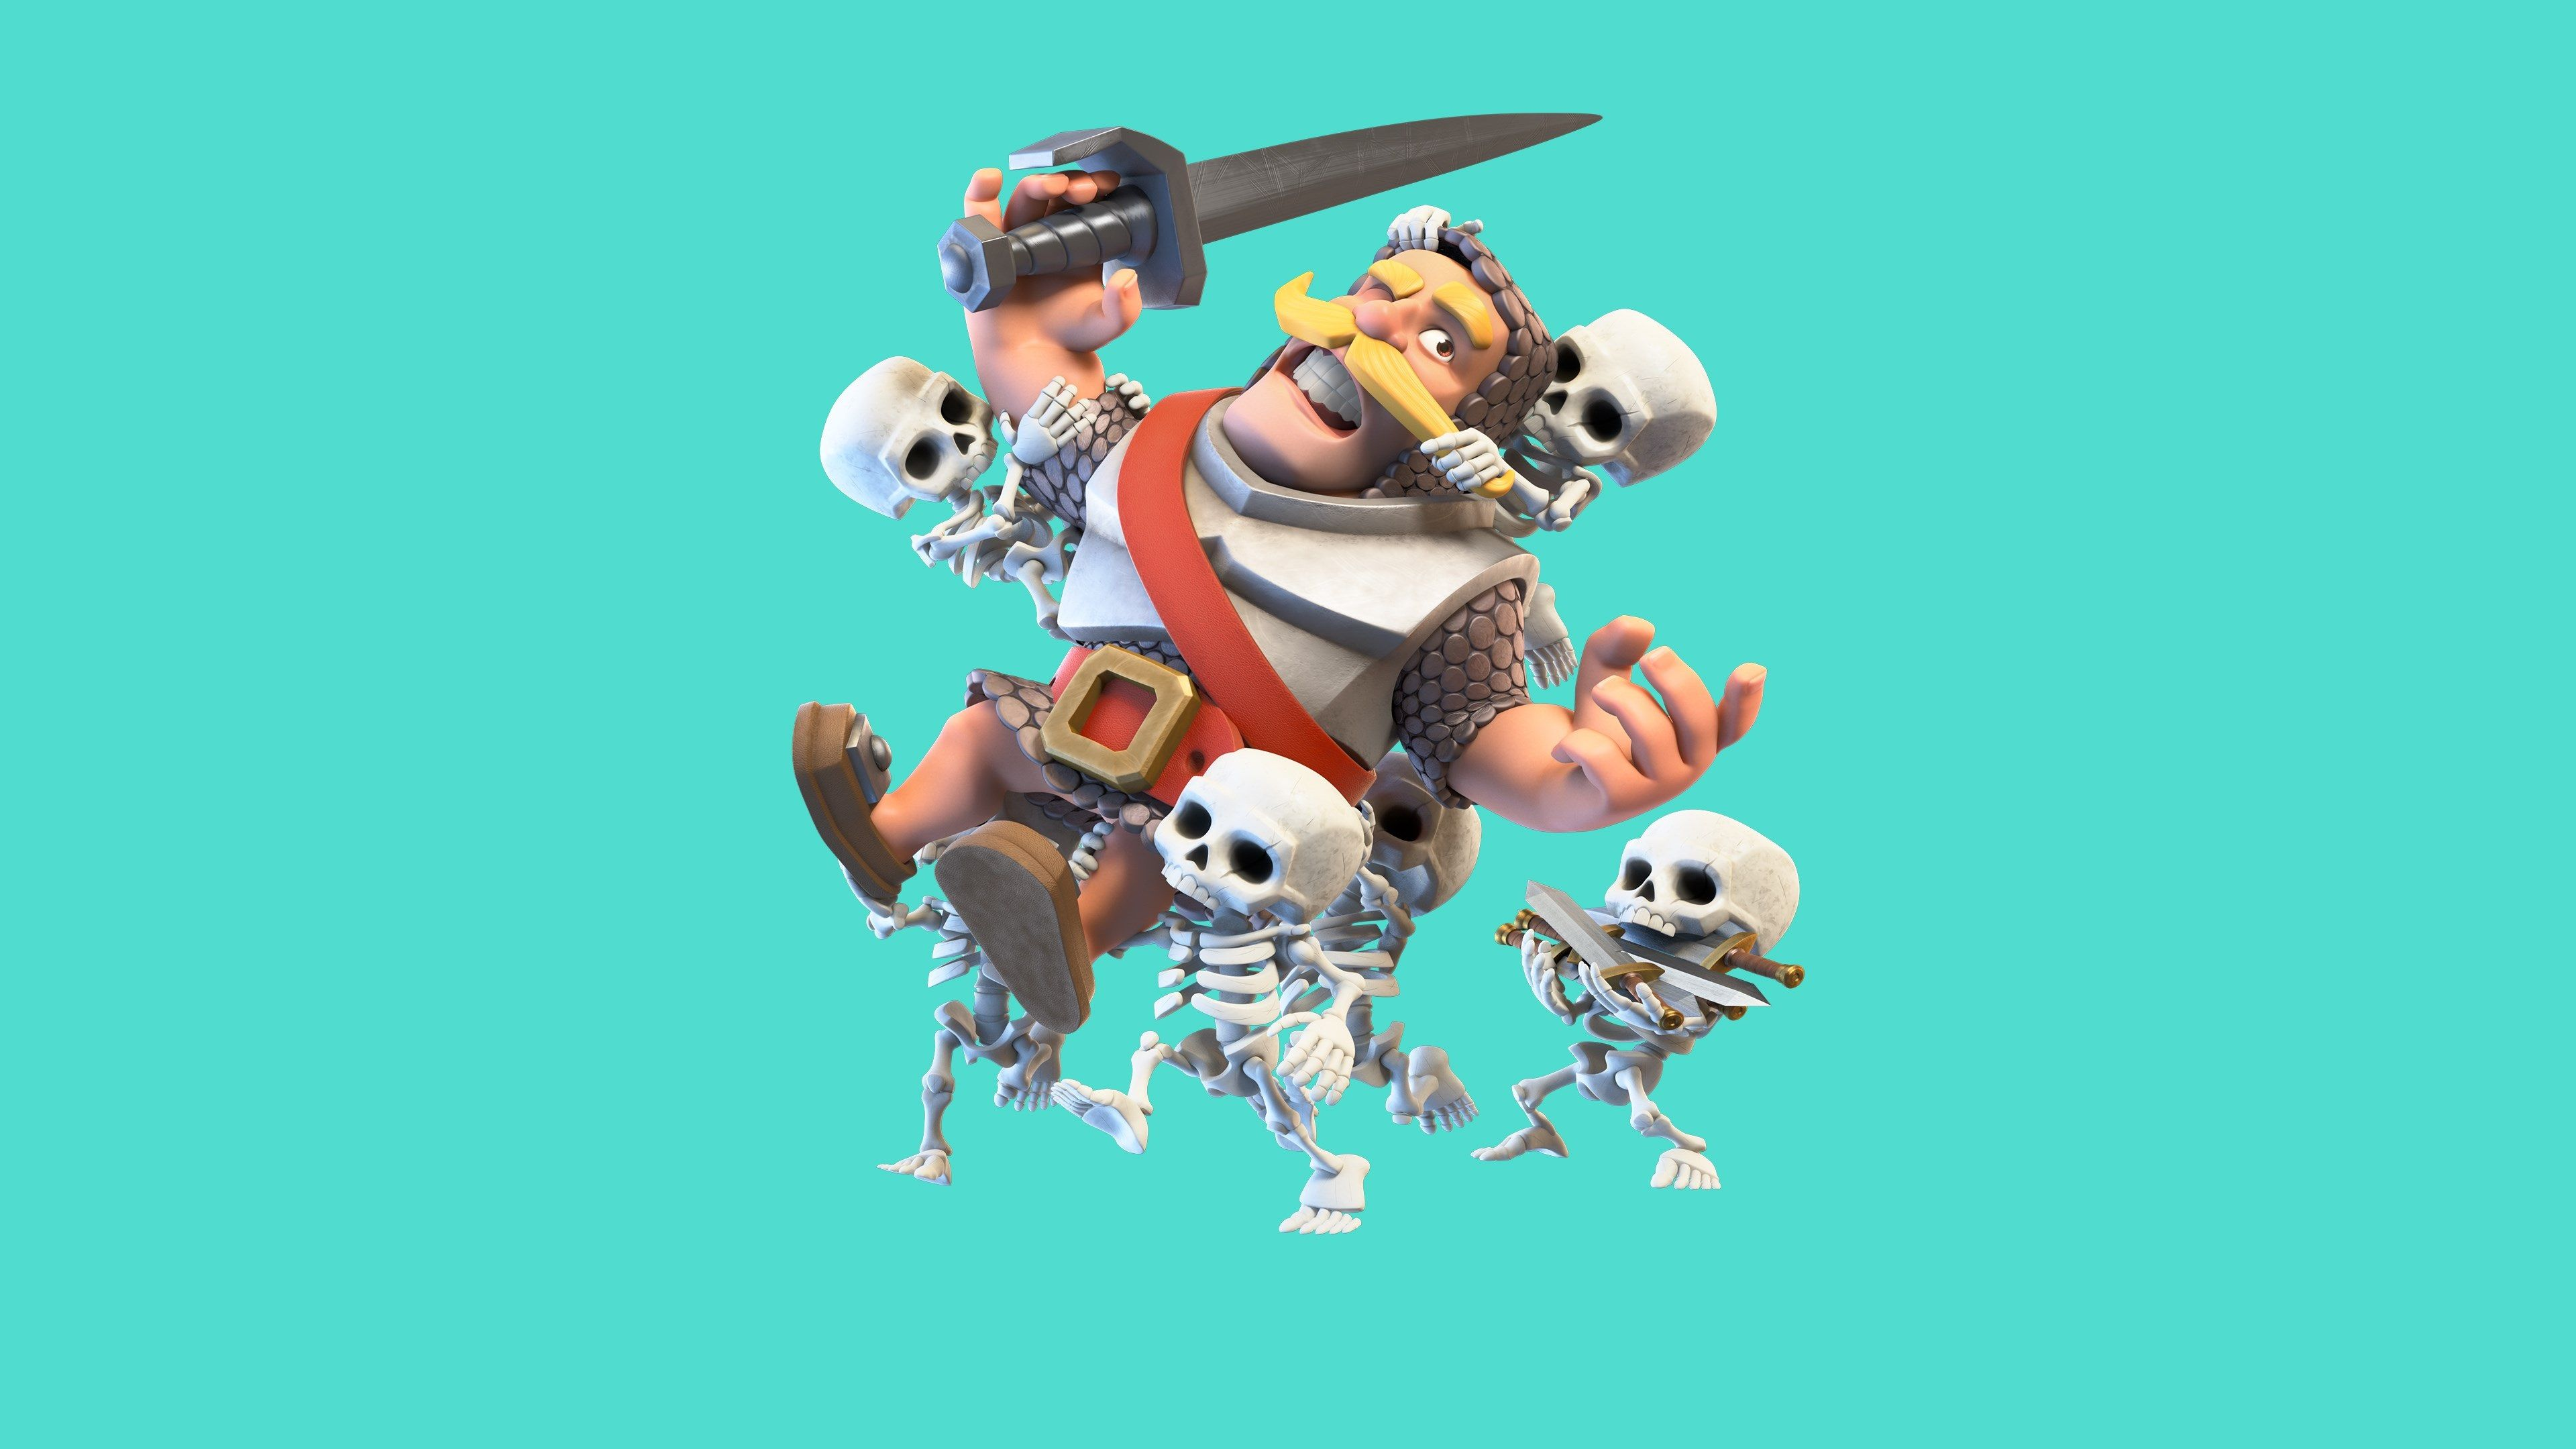 3840x2160 Supercell 4k High Definition Wallpaper Clash Royale Wallpaper Clash Royale Pokemon Cards